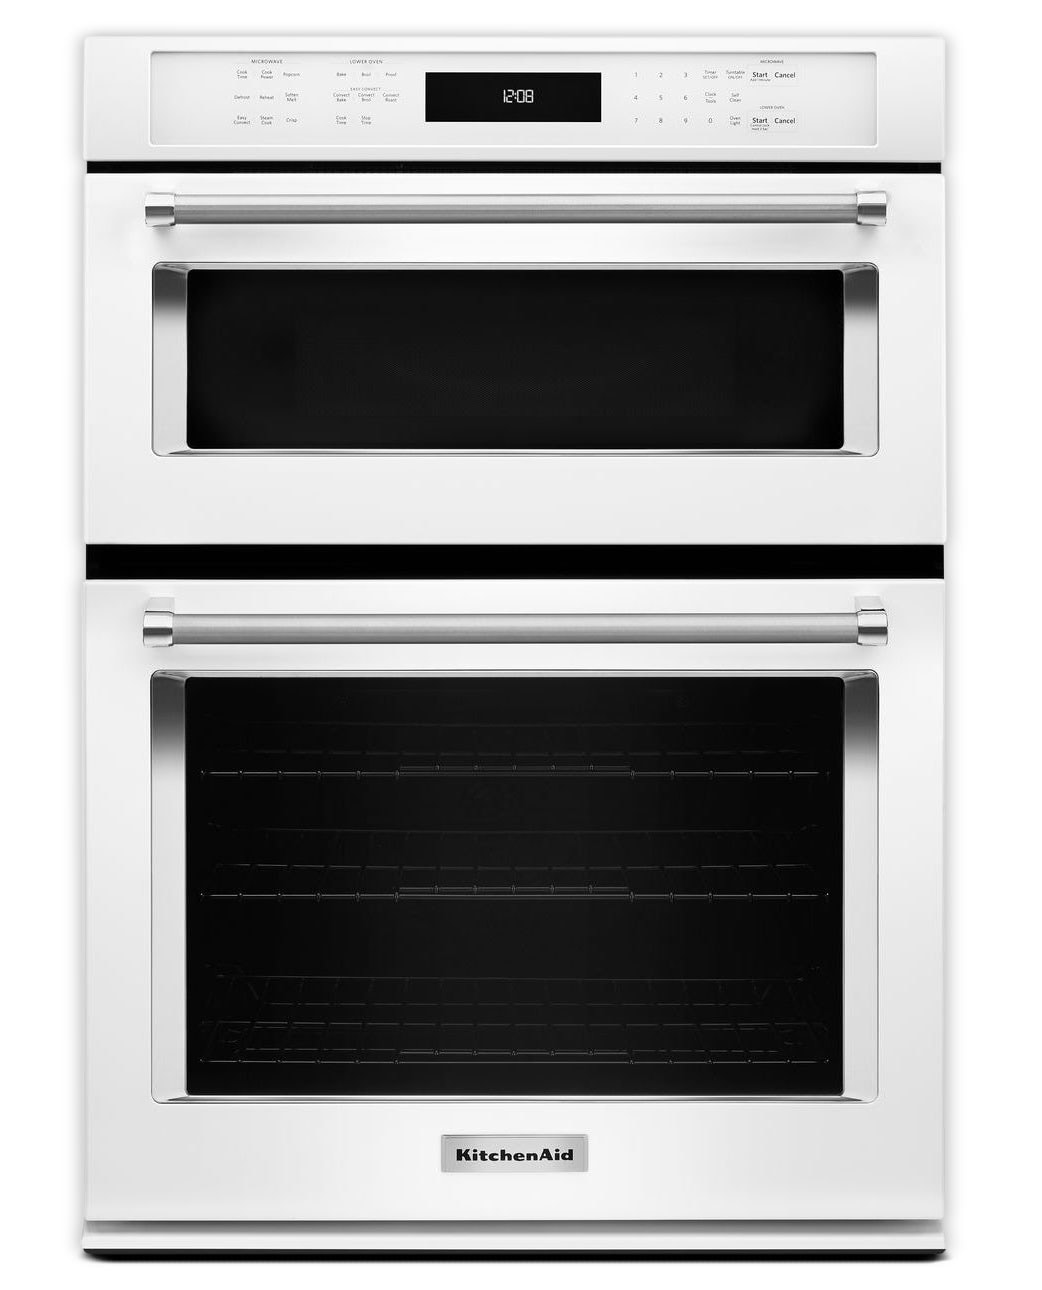 Cooking Products - KitchenAid White Wall Oven (5 Cu. Ft.) w/ Microwave (1.4 Cu. Ft.) - KOCE500EWH